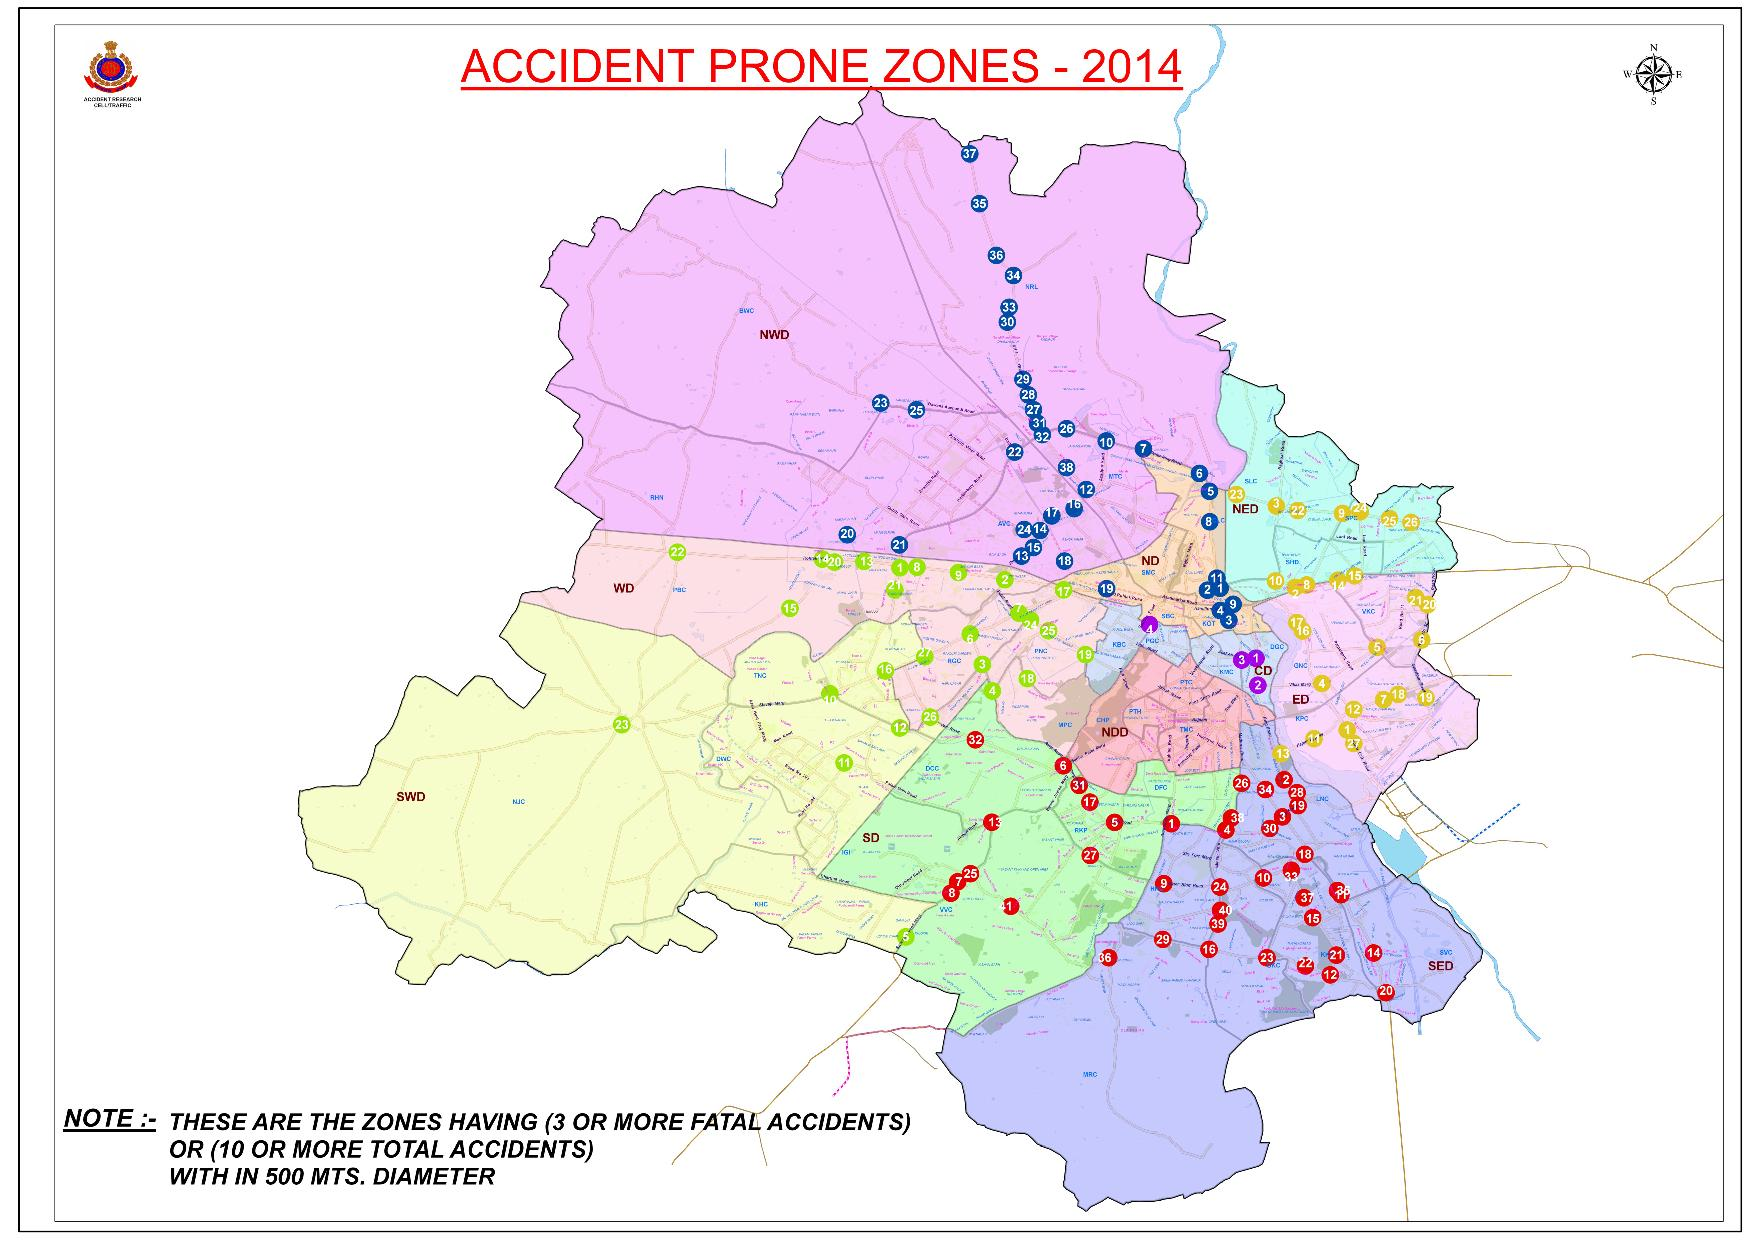 MAP-OF-ACCIDENT-PRONE-AREA